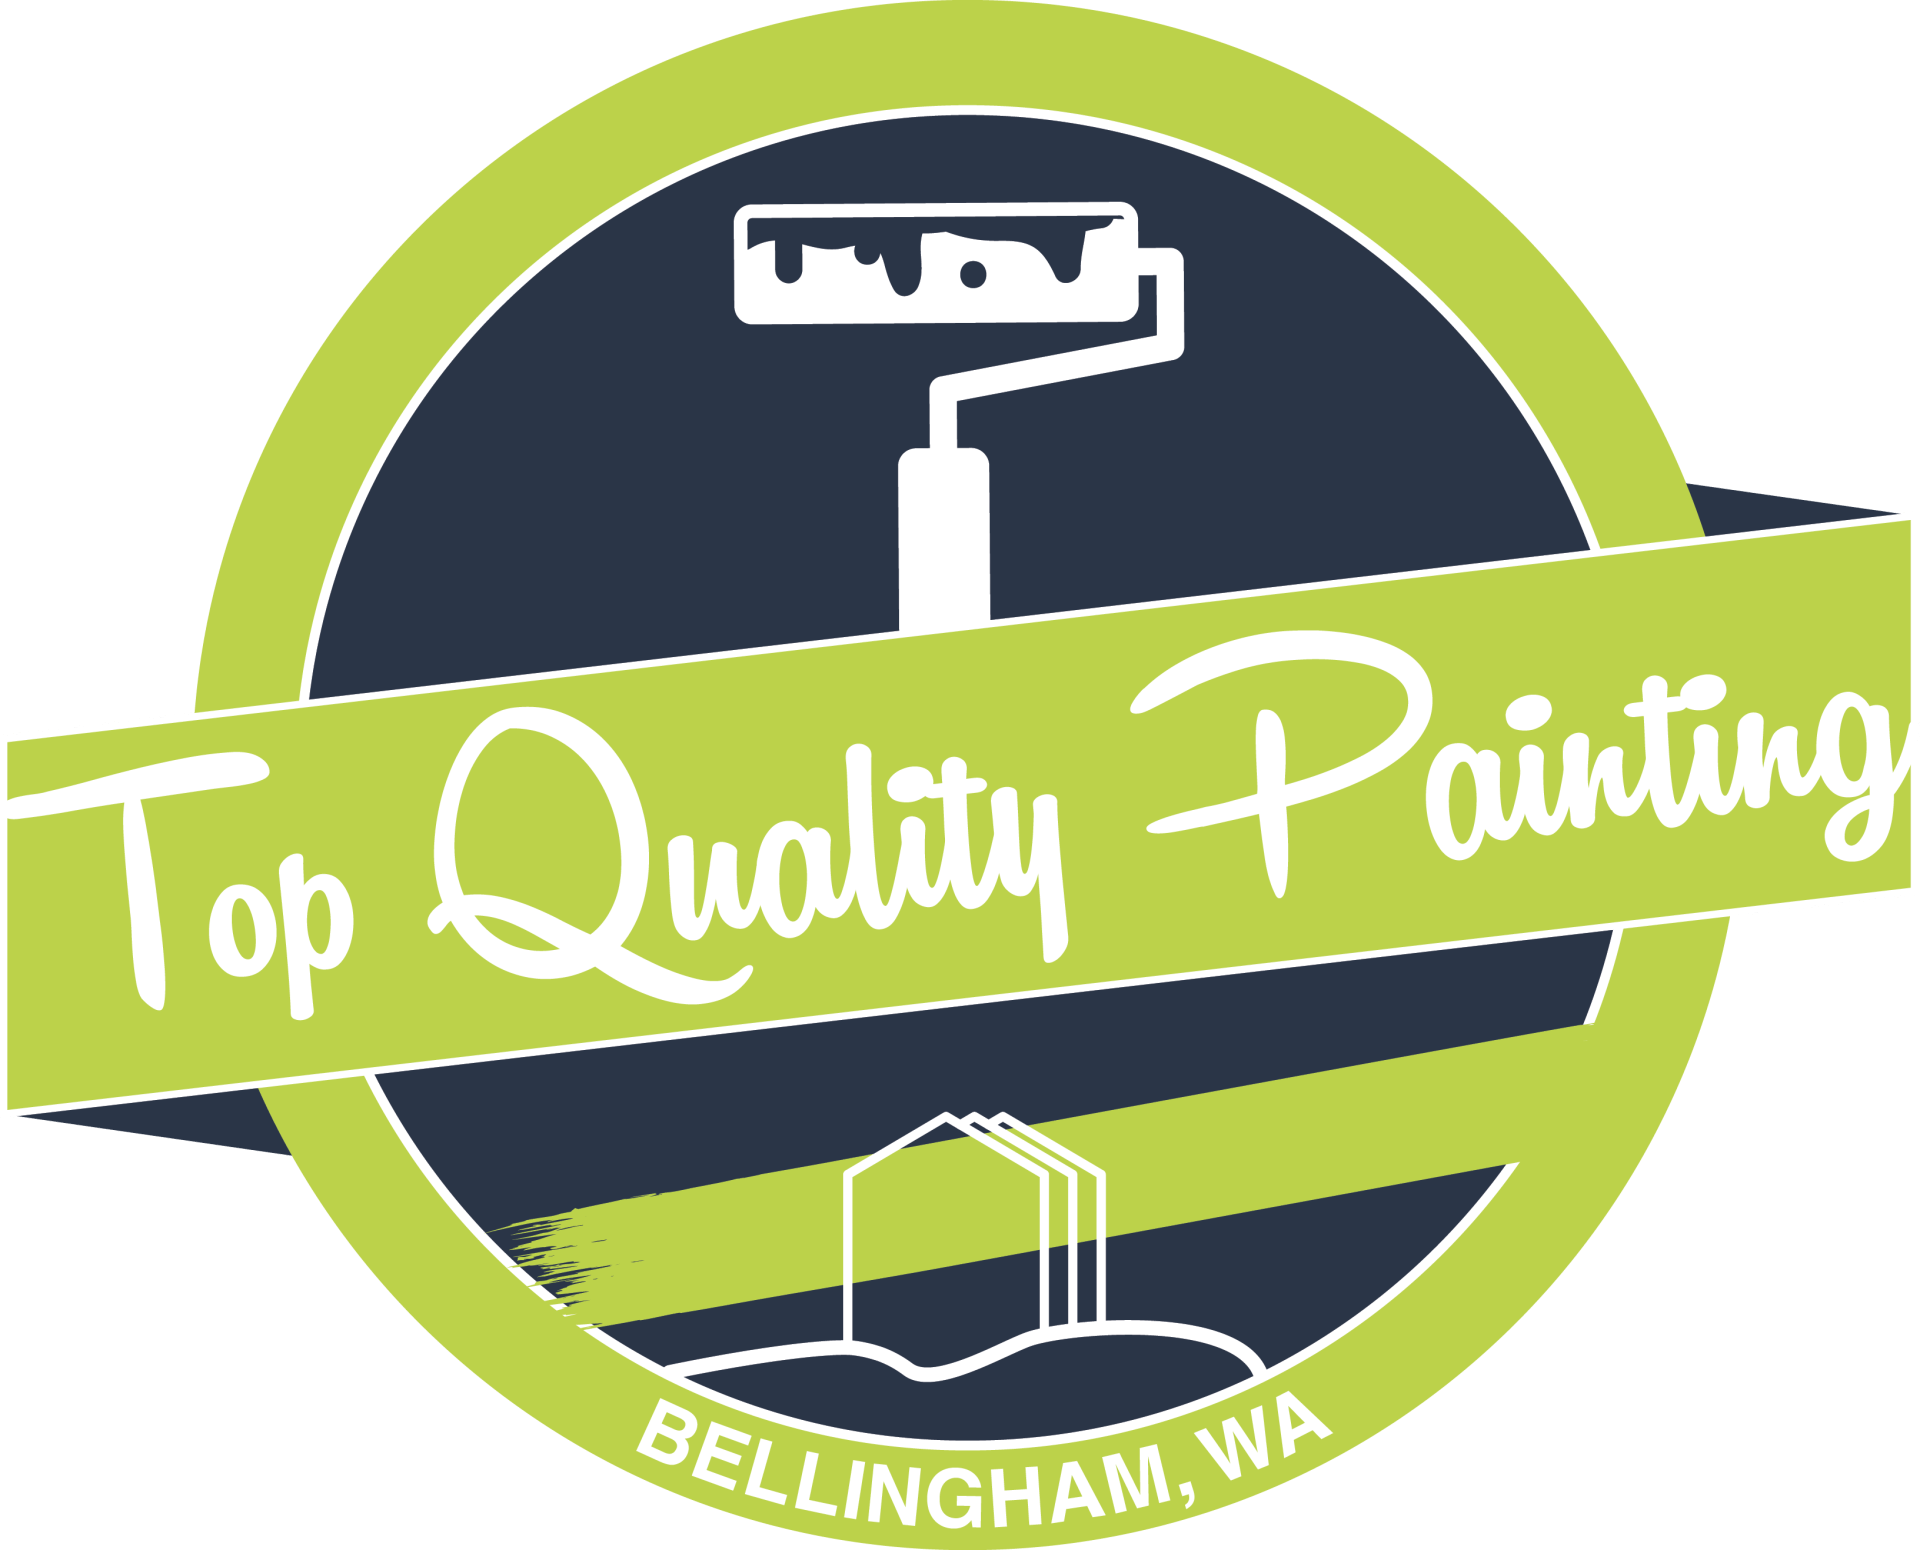 Top Quality Painting logo